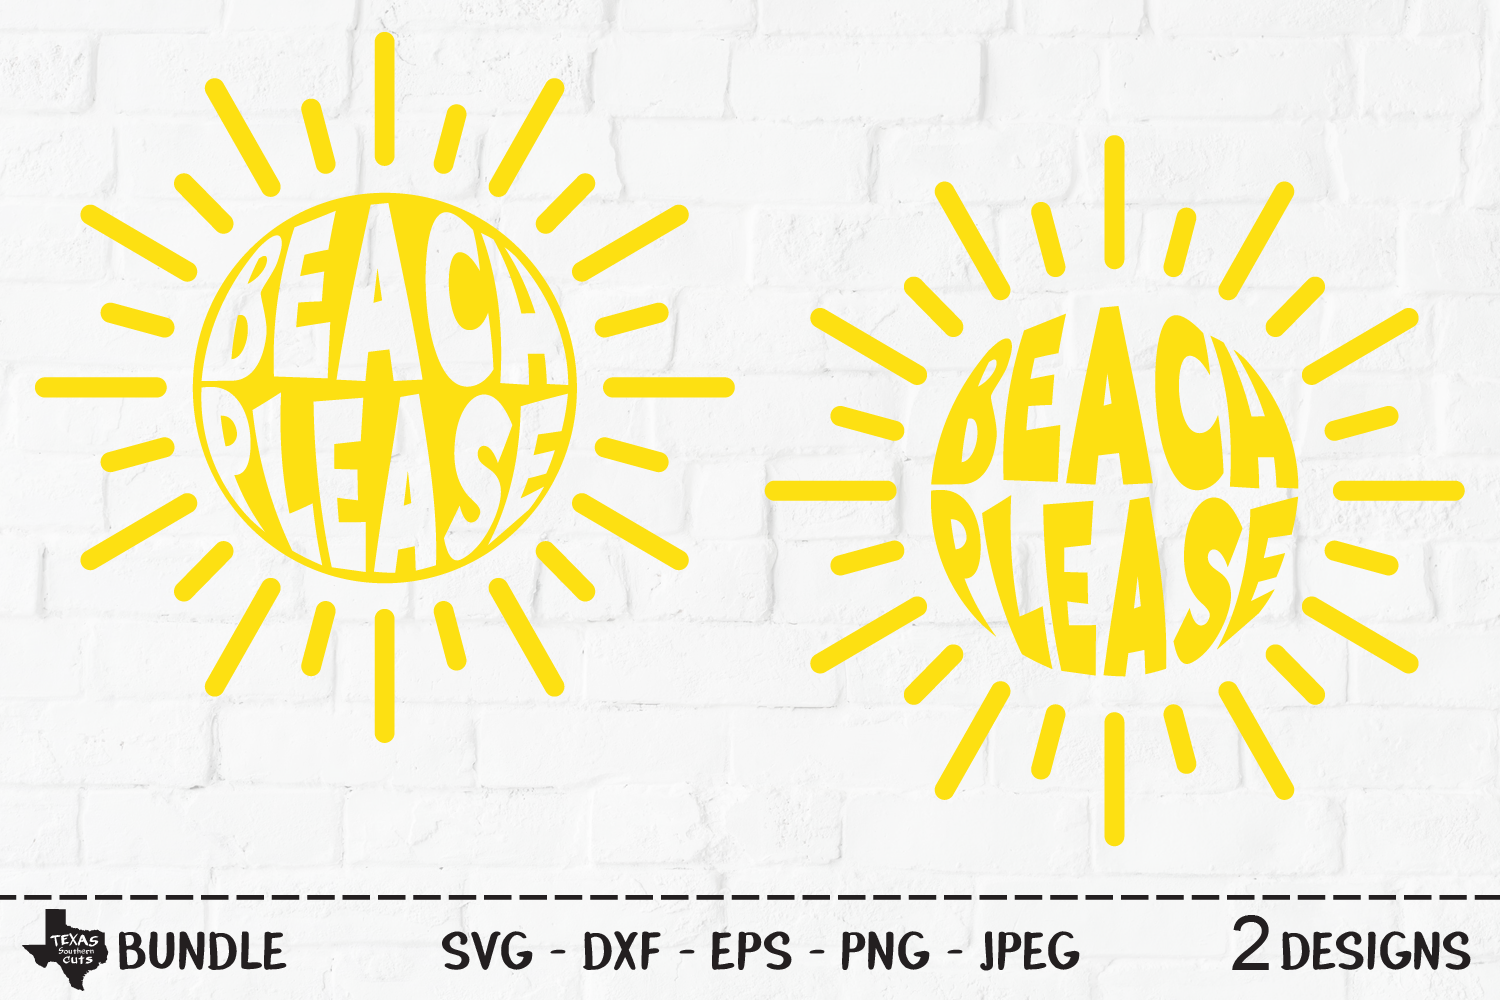 Download Free Beach Please Summer Shirt Designs Graphic By Texassoutherncuts for Cricut Explore, Silhouette and other cutting machines.